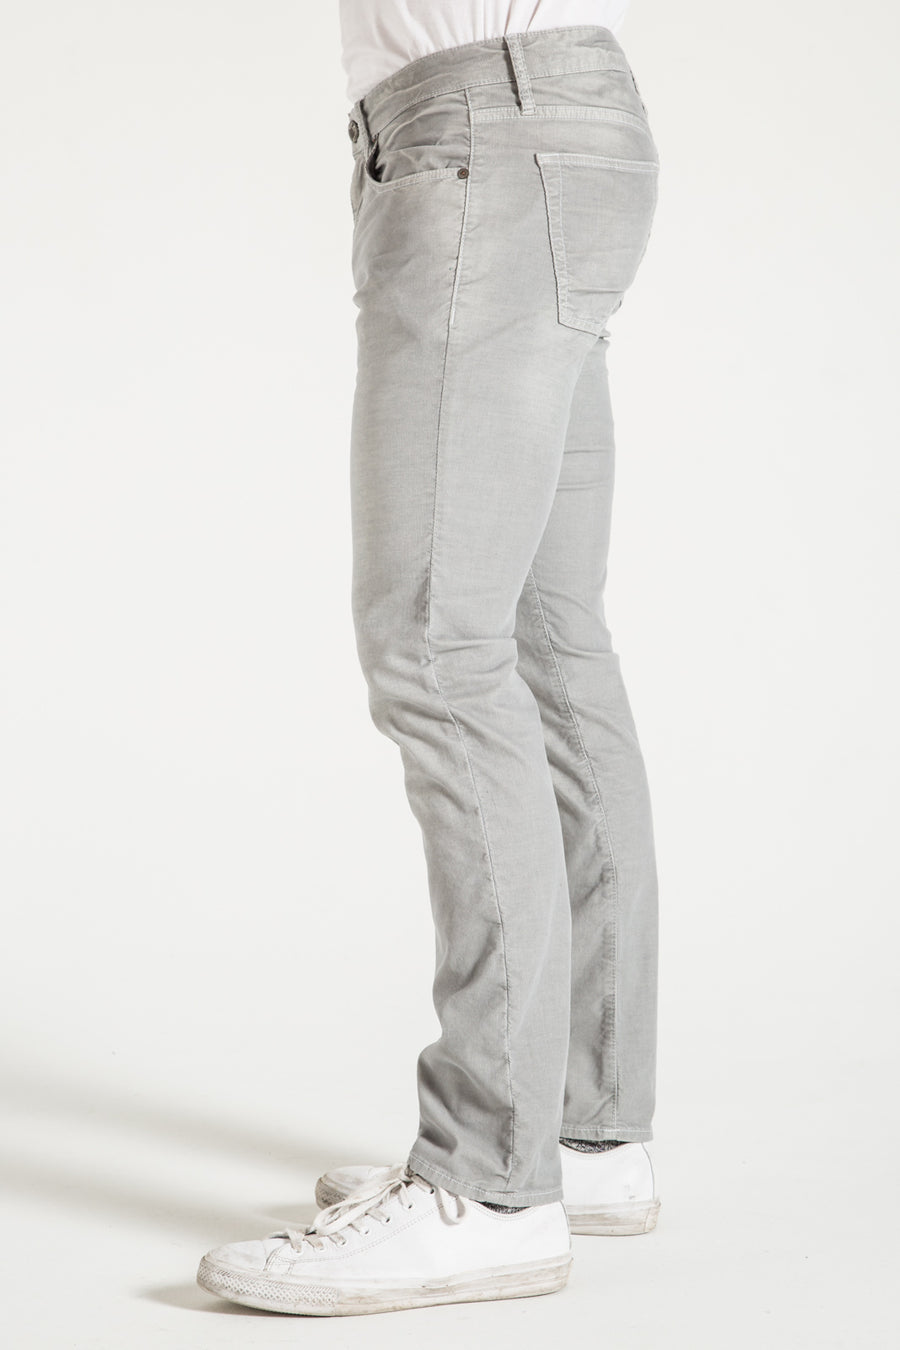 BARFLY SLIM IN HEATHER GRAY CORDUROY